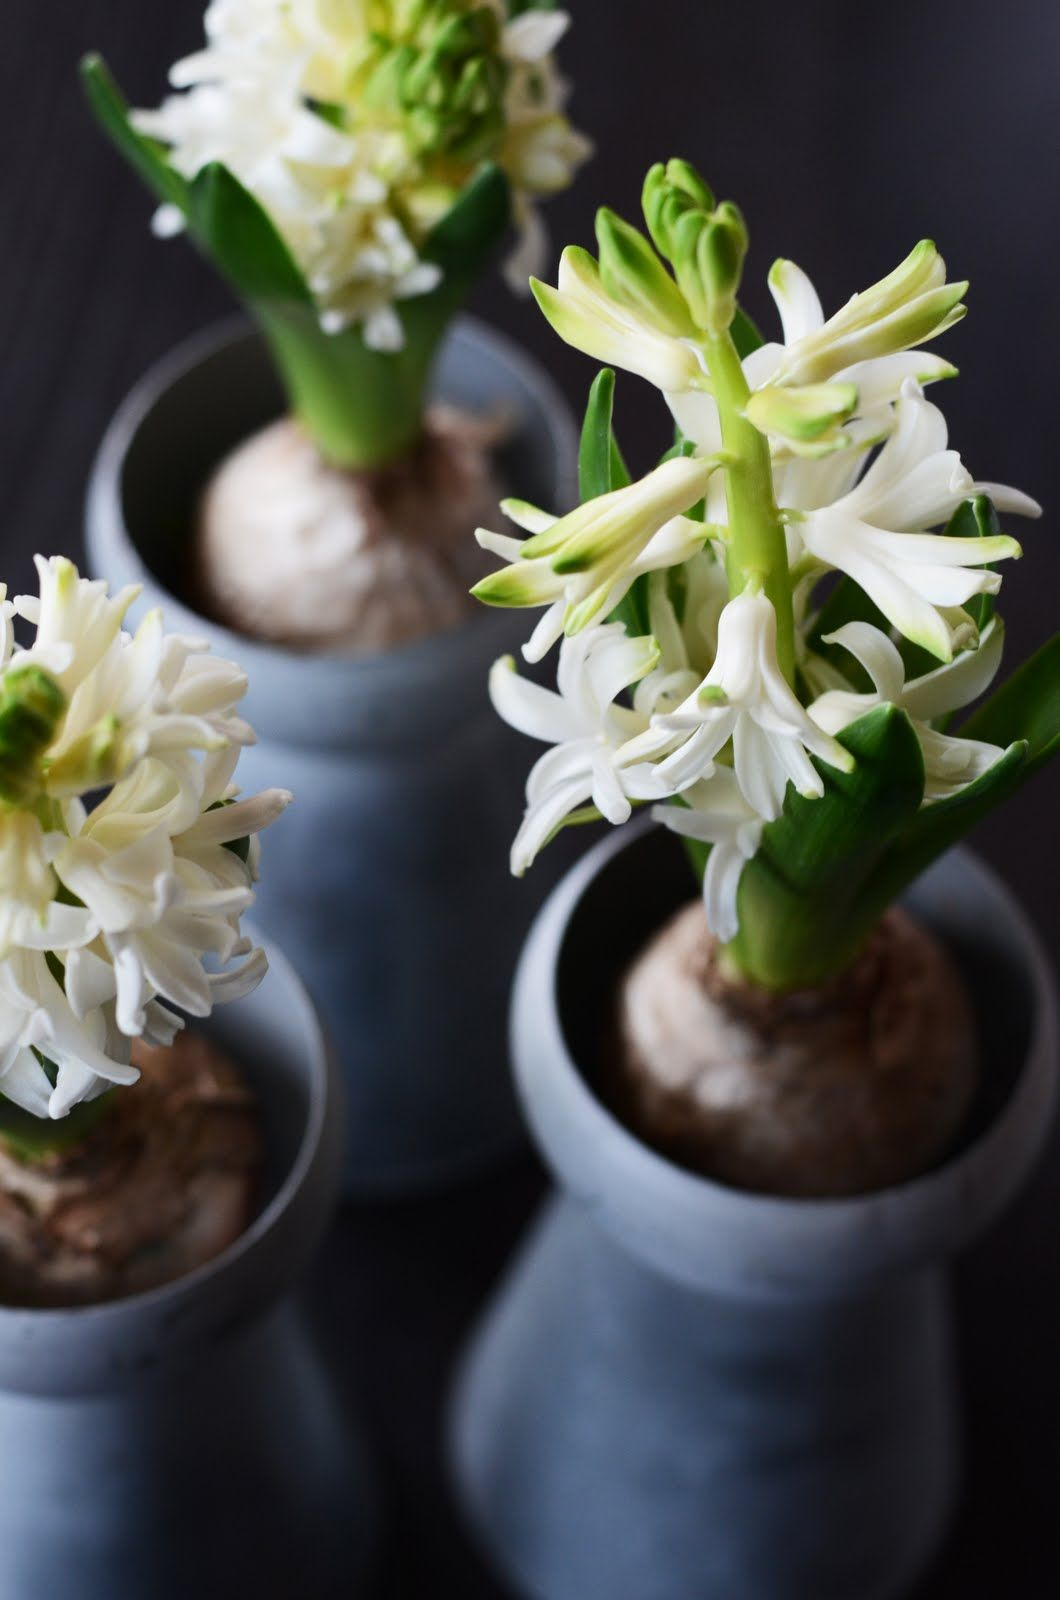 Imagine the sweet scent from those lovely hyacinths.